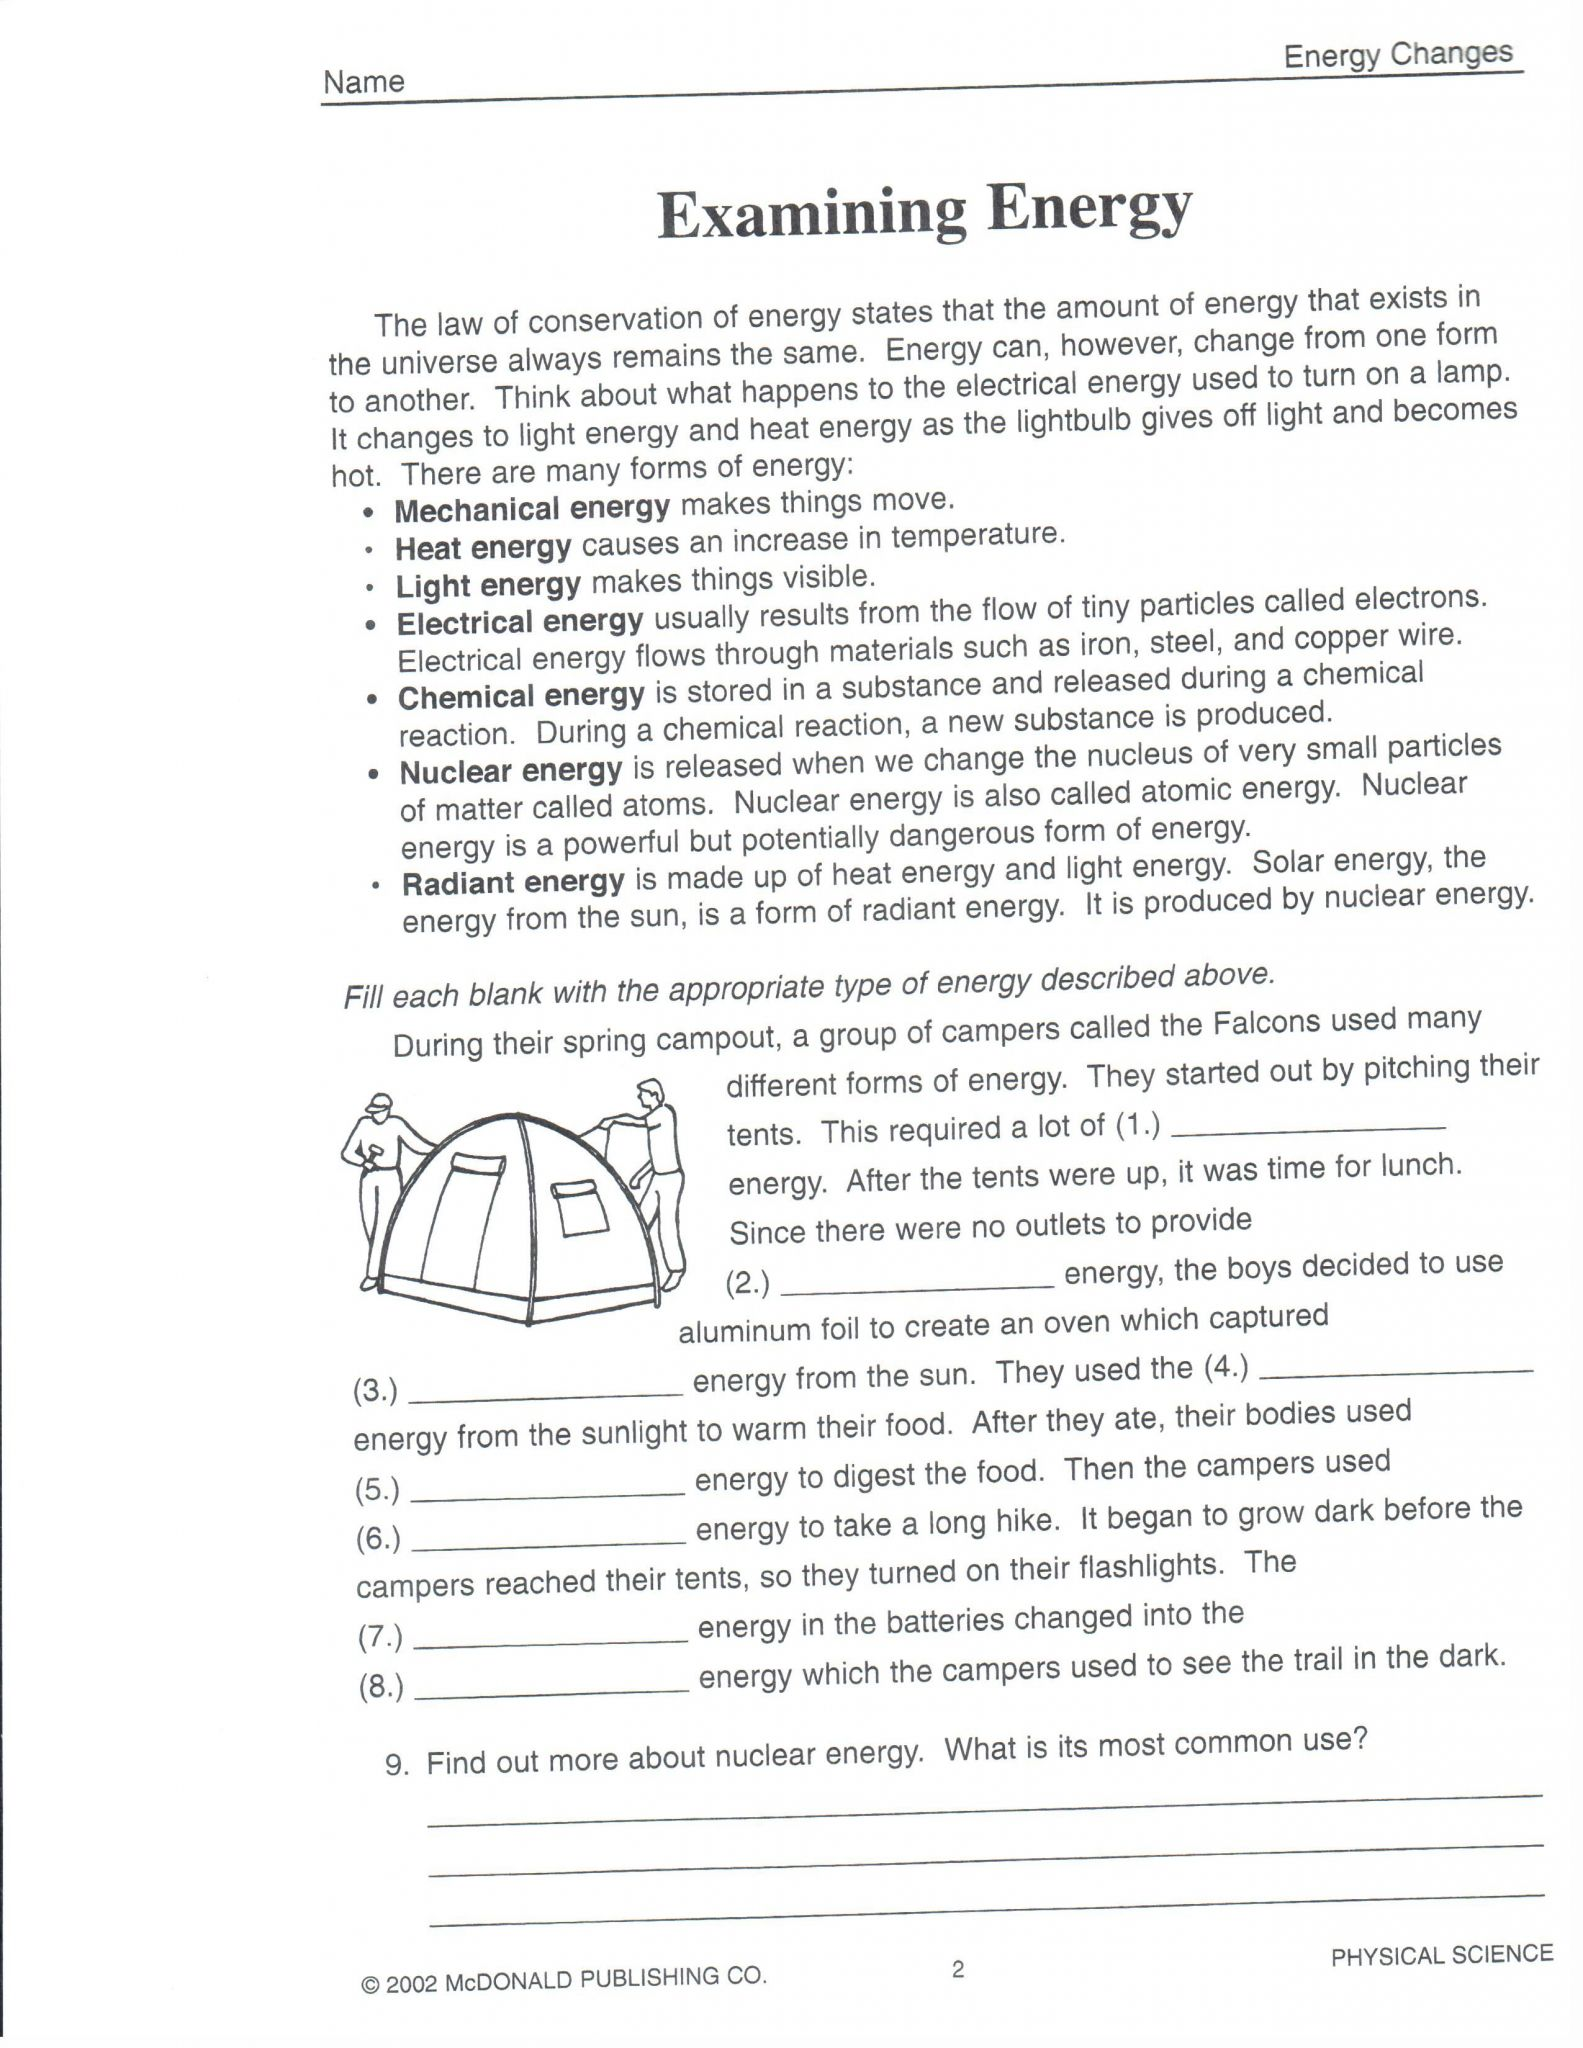 Nuclear Fission And Fusion Worksheet Answers